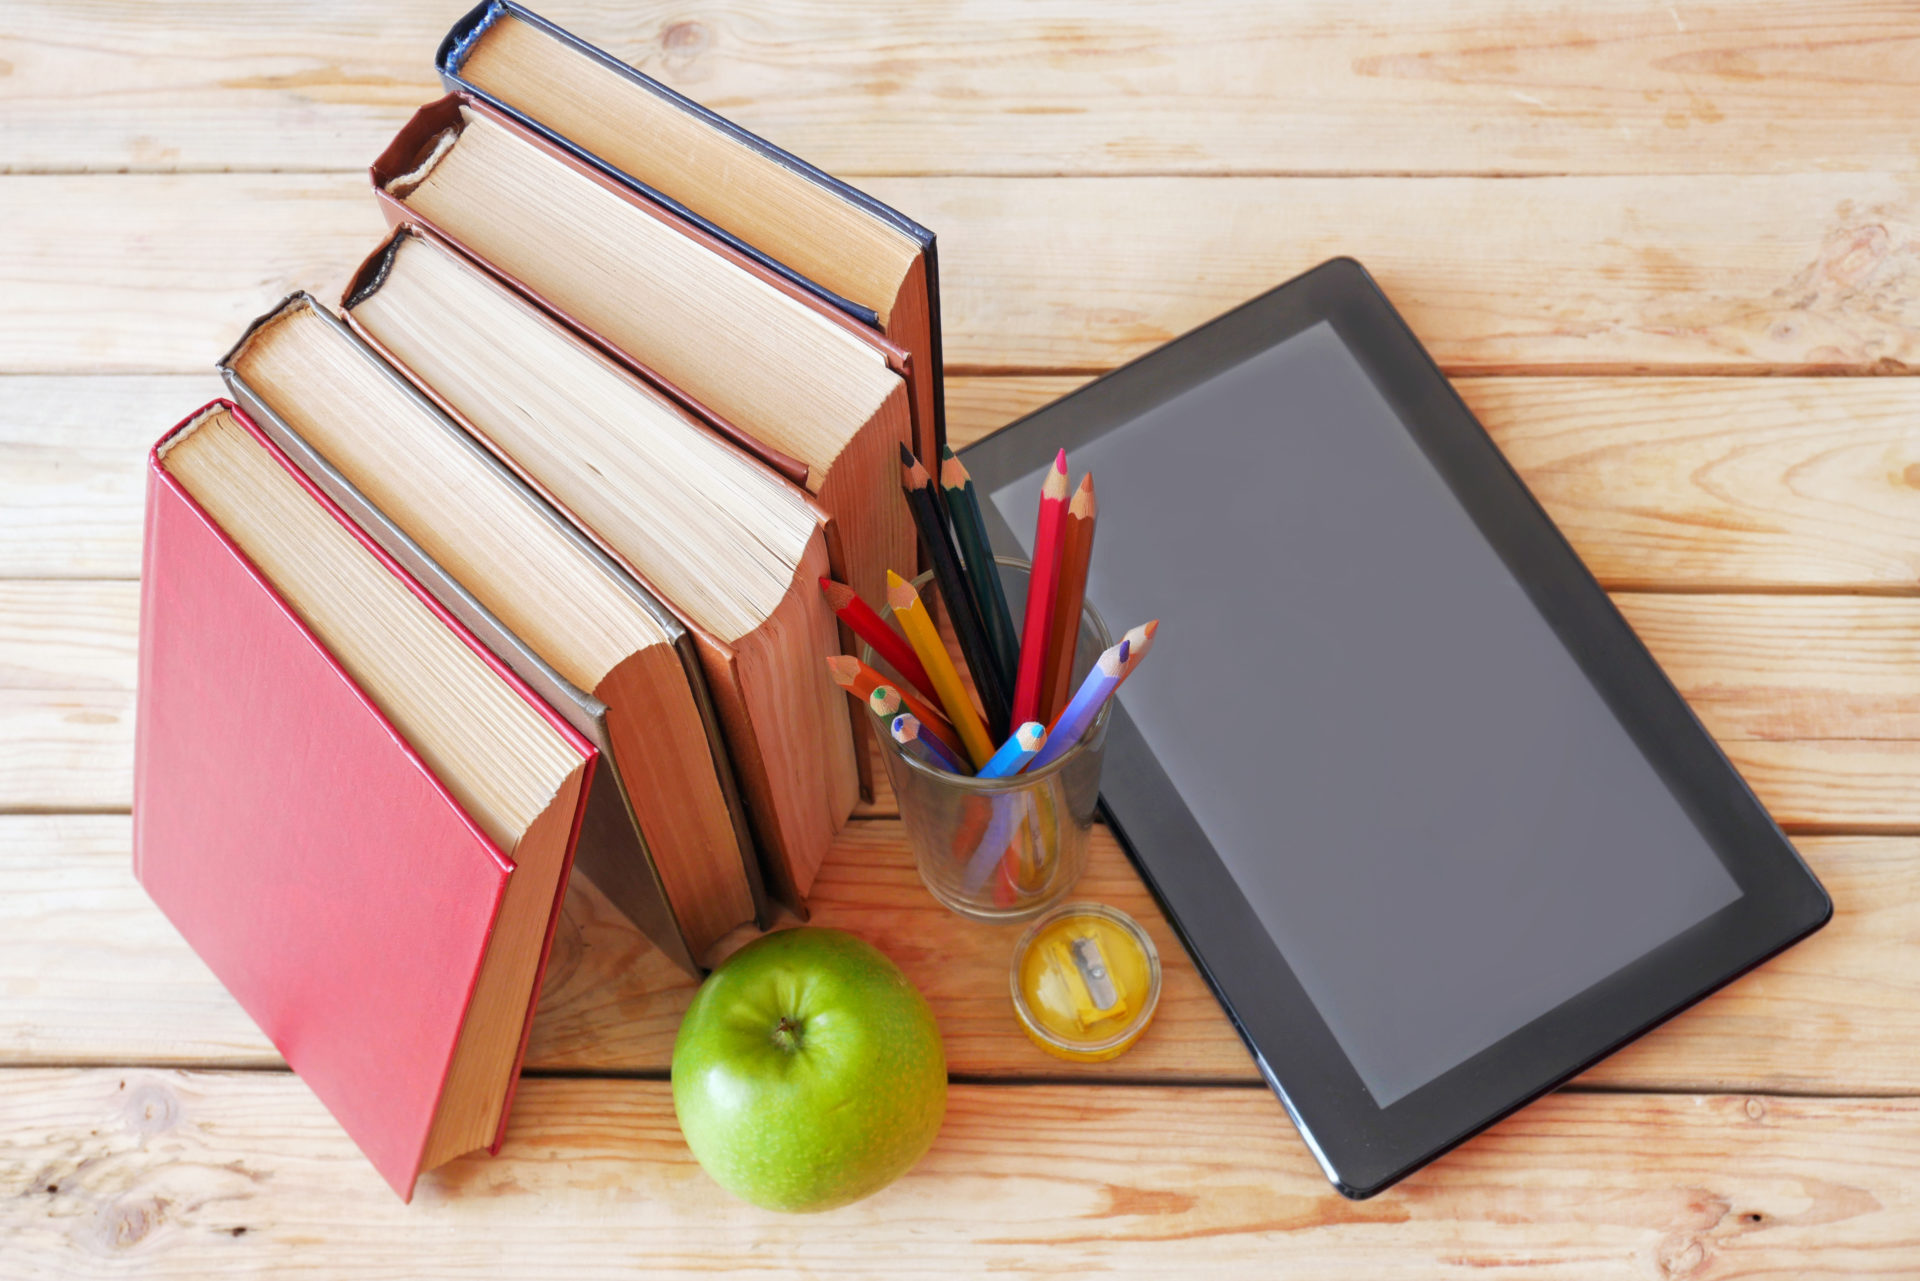 laptop, apple and many books on wooden background, e-learning concept